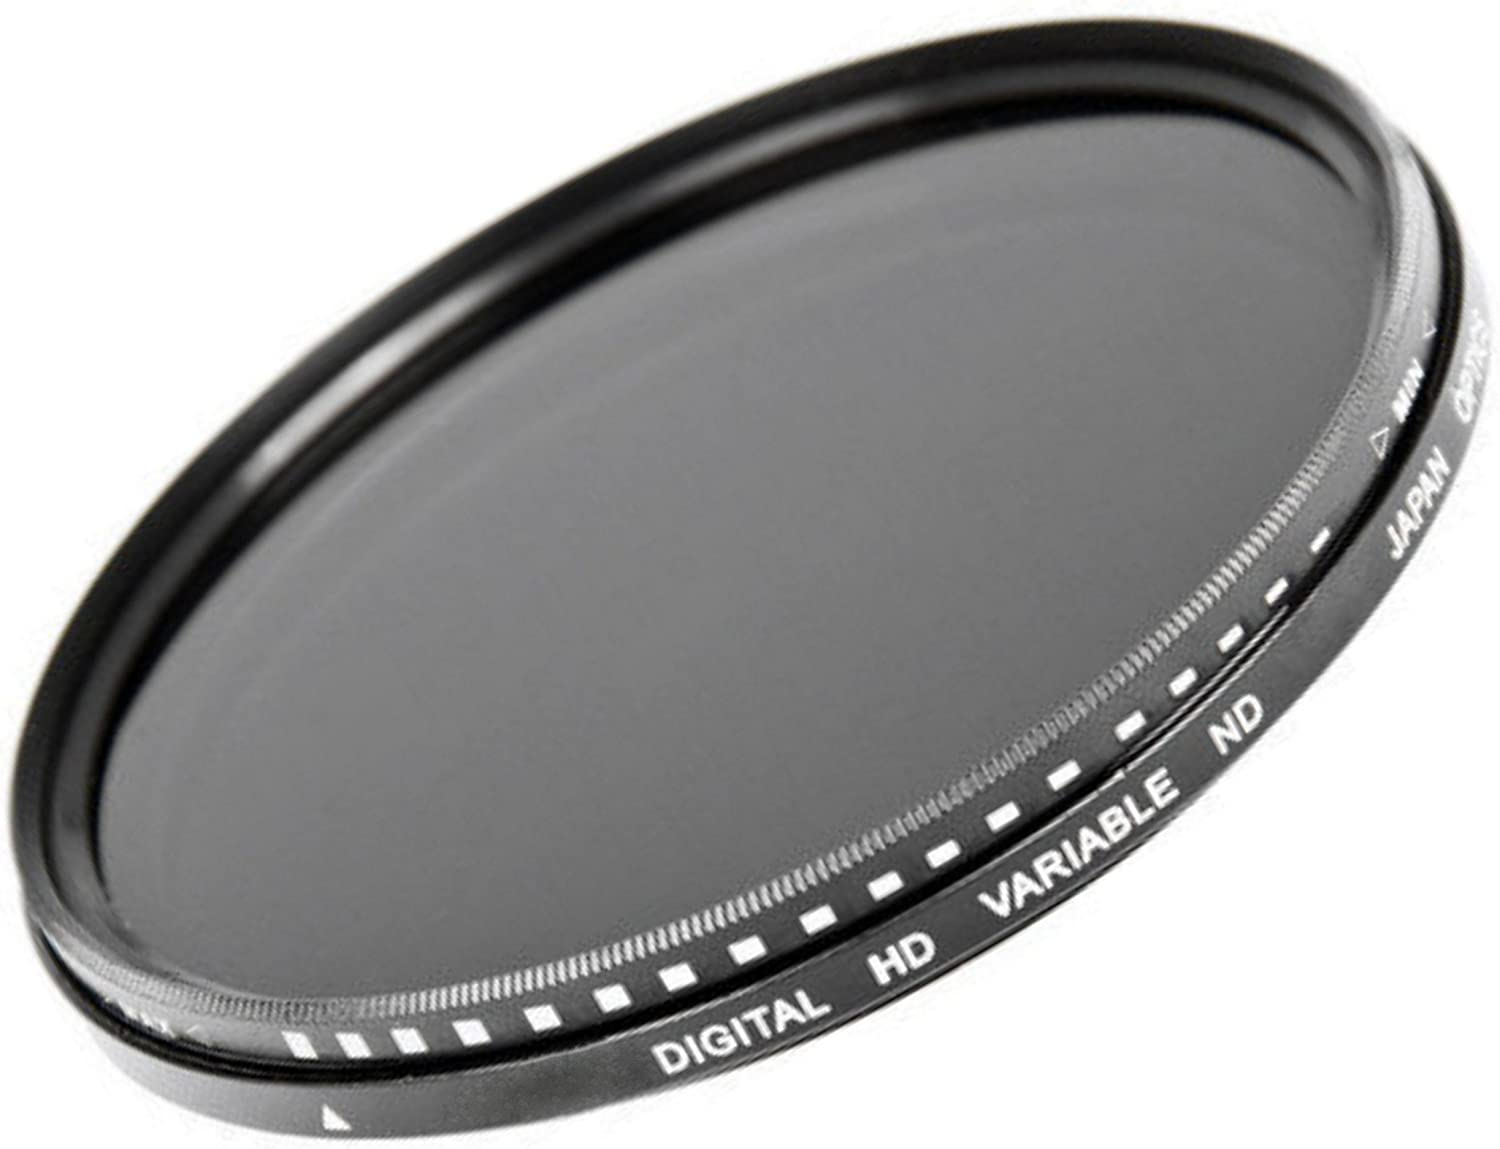 PRO - 95mm Discount High material is also underway ND Filter 8 De Adjustable Neutral Stops Light of